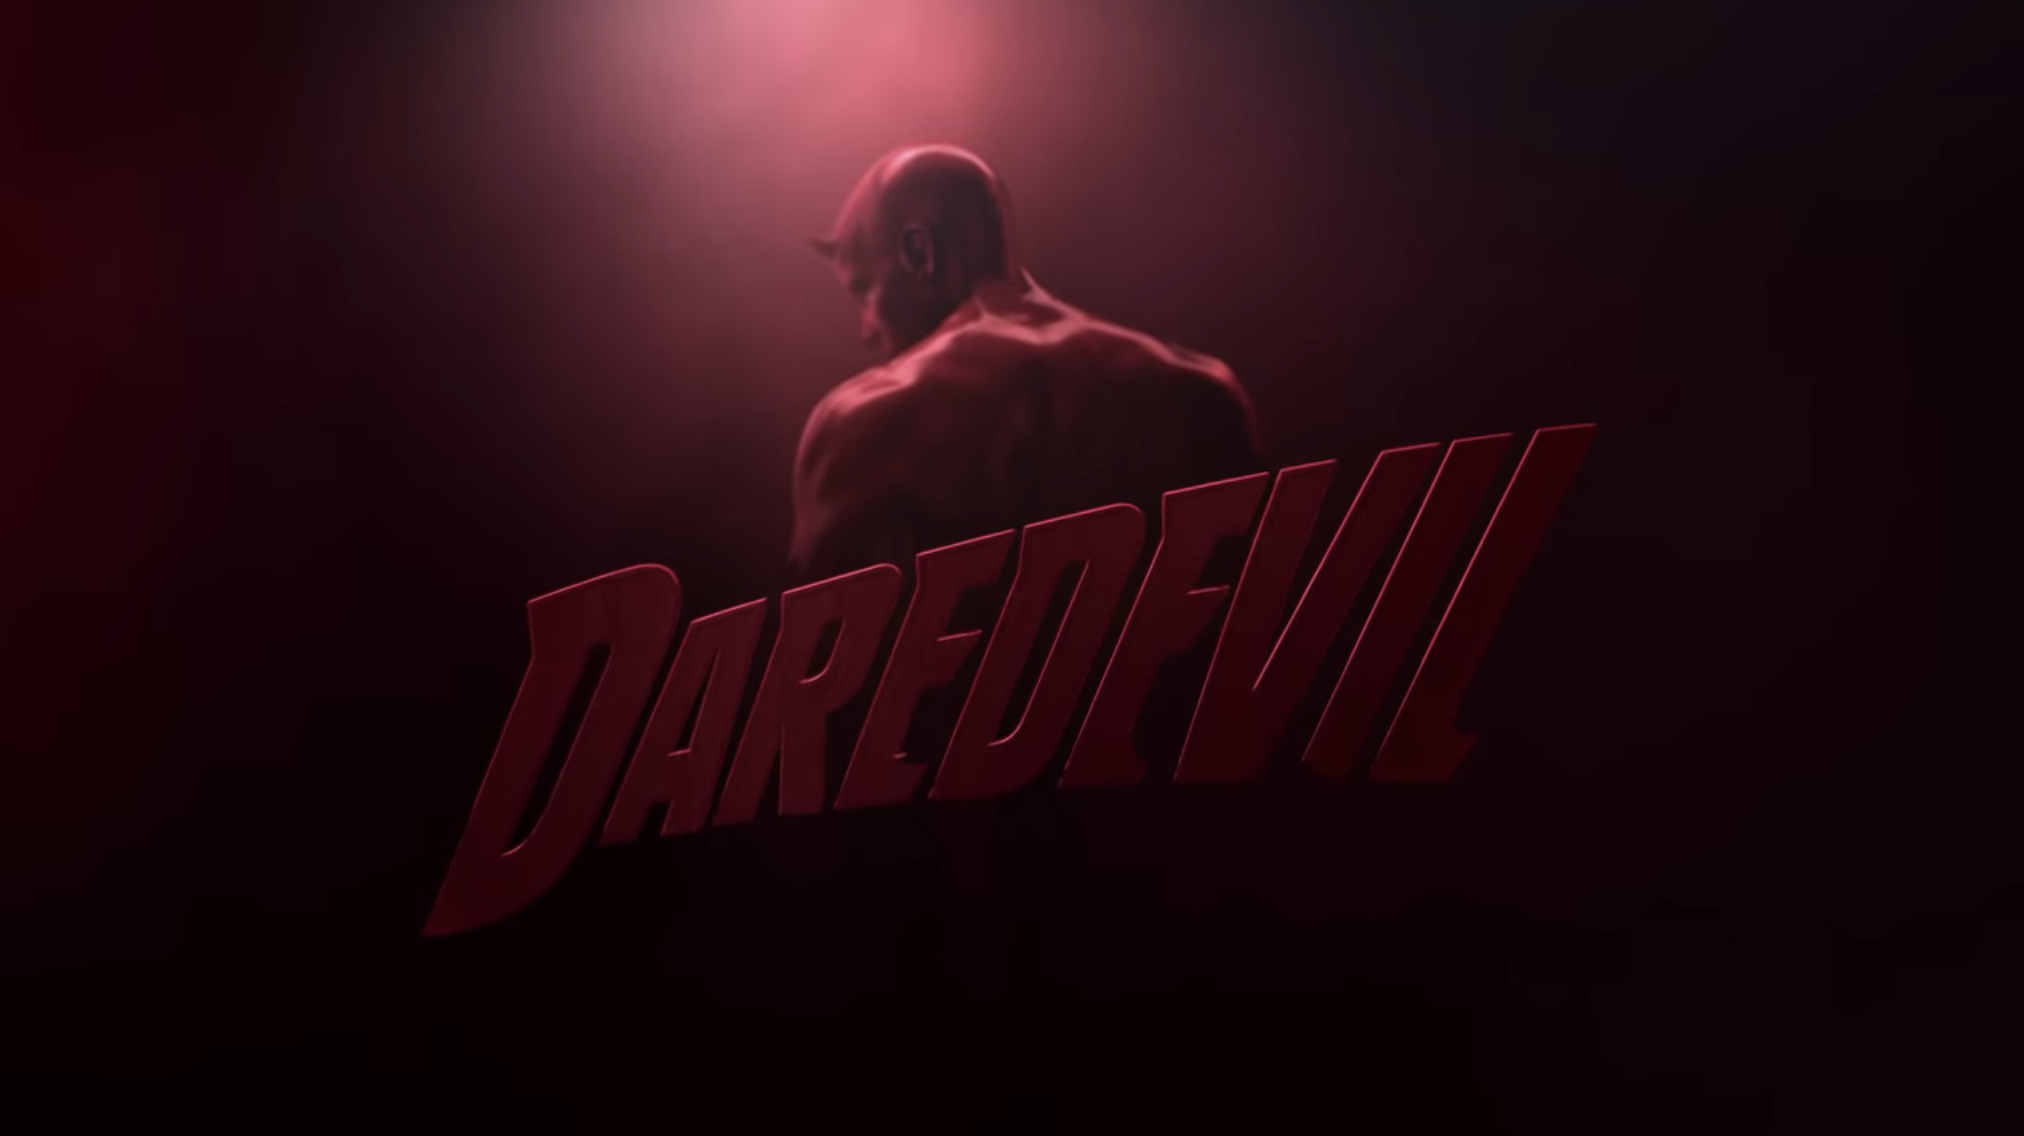 """Daredevil"" title card — which is the title over a silhouette of the superhero."